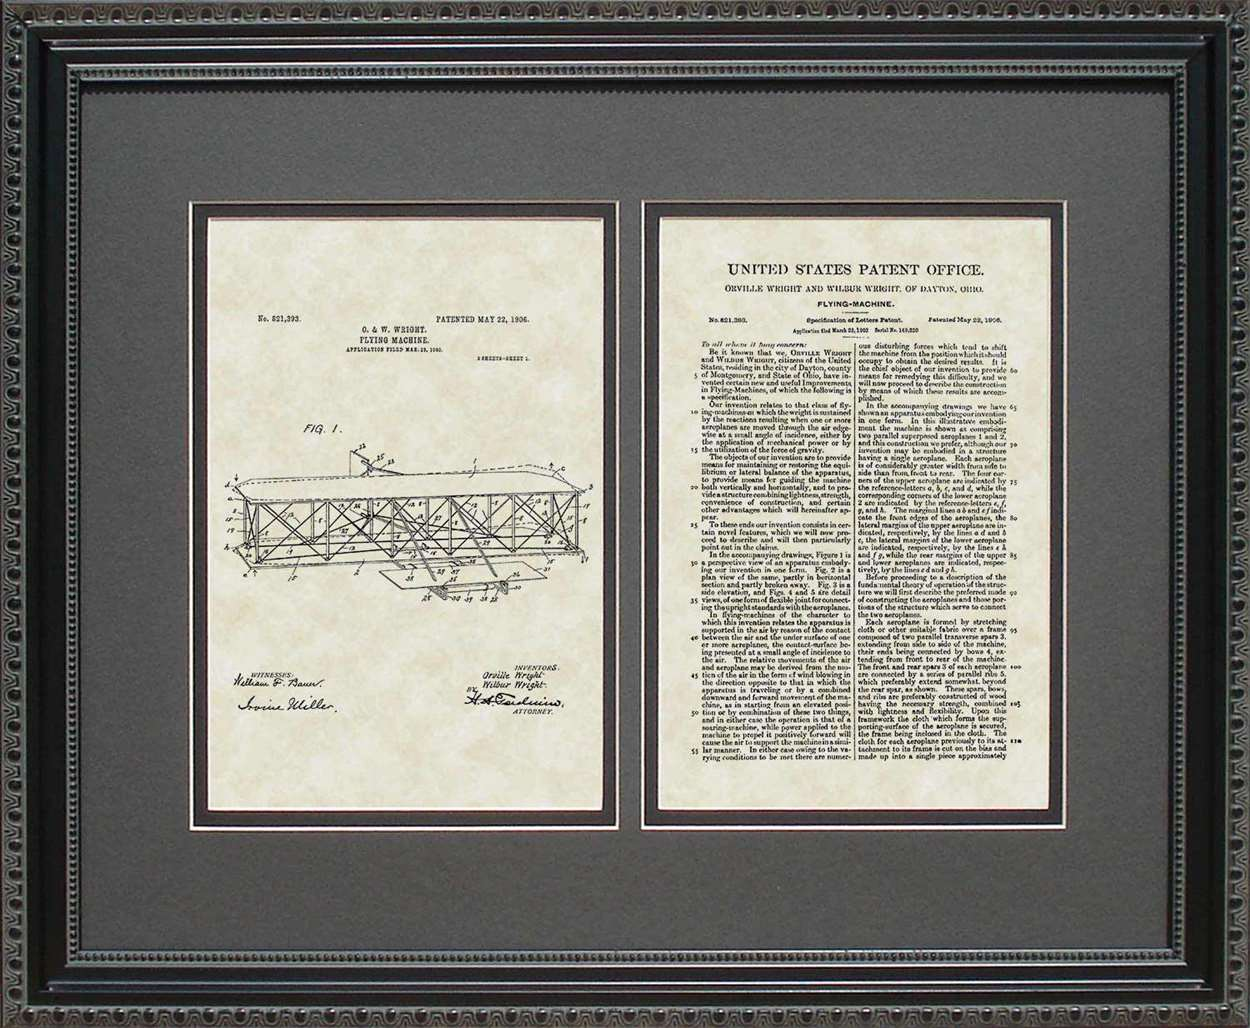 Airplane Patent, Art & Copy, Wright, 1906, 16x20